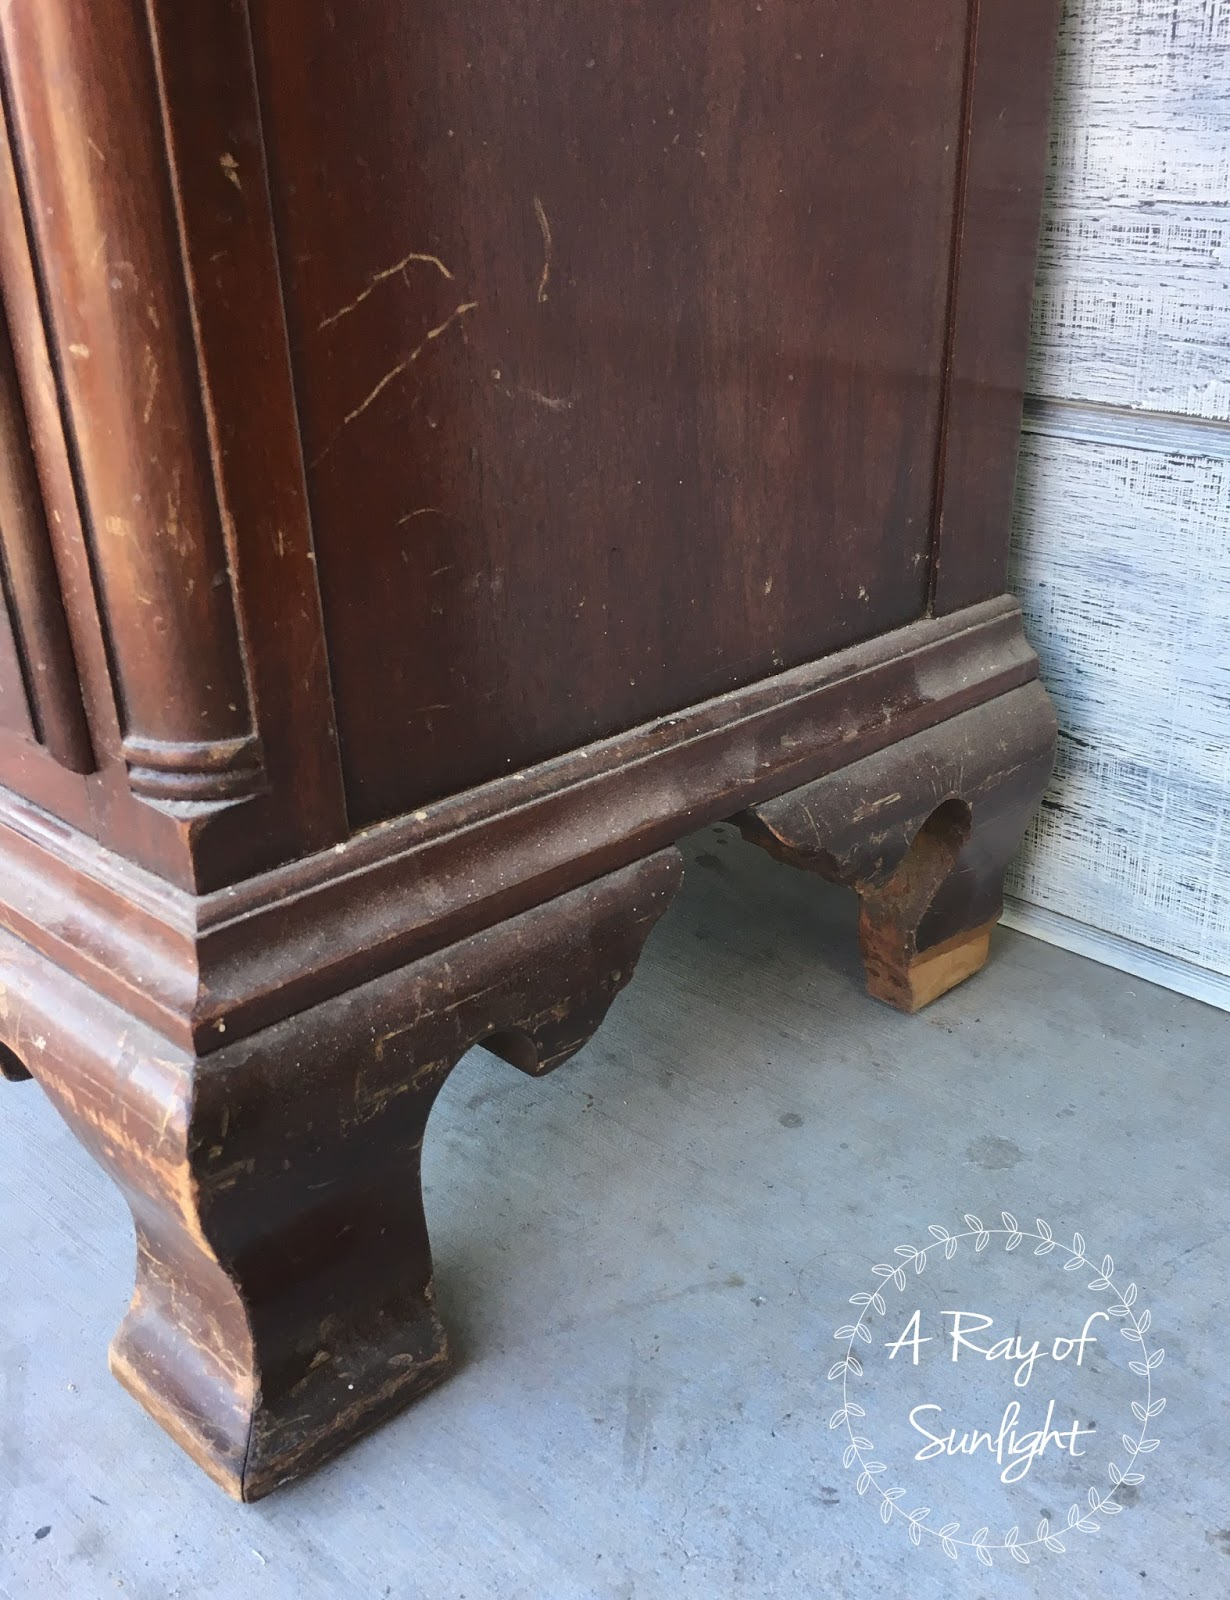 How to repair a broken leg on a vintage nightstand. I love updating family heirlooms, and furniture passed down in the family. This is a great way to update it instead of throwing it in the garbage.